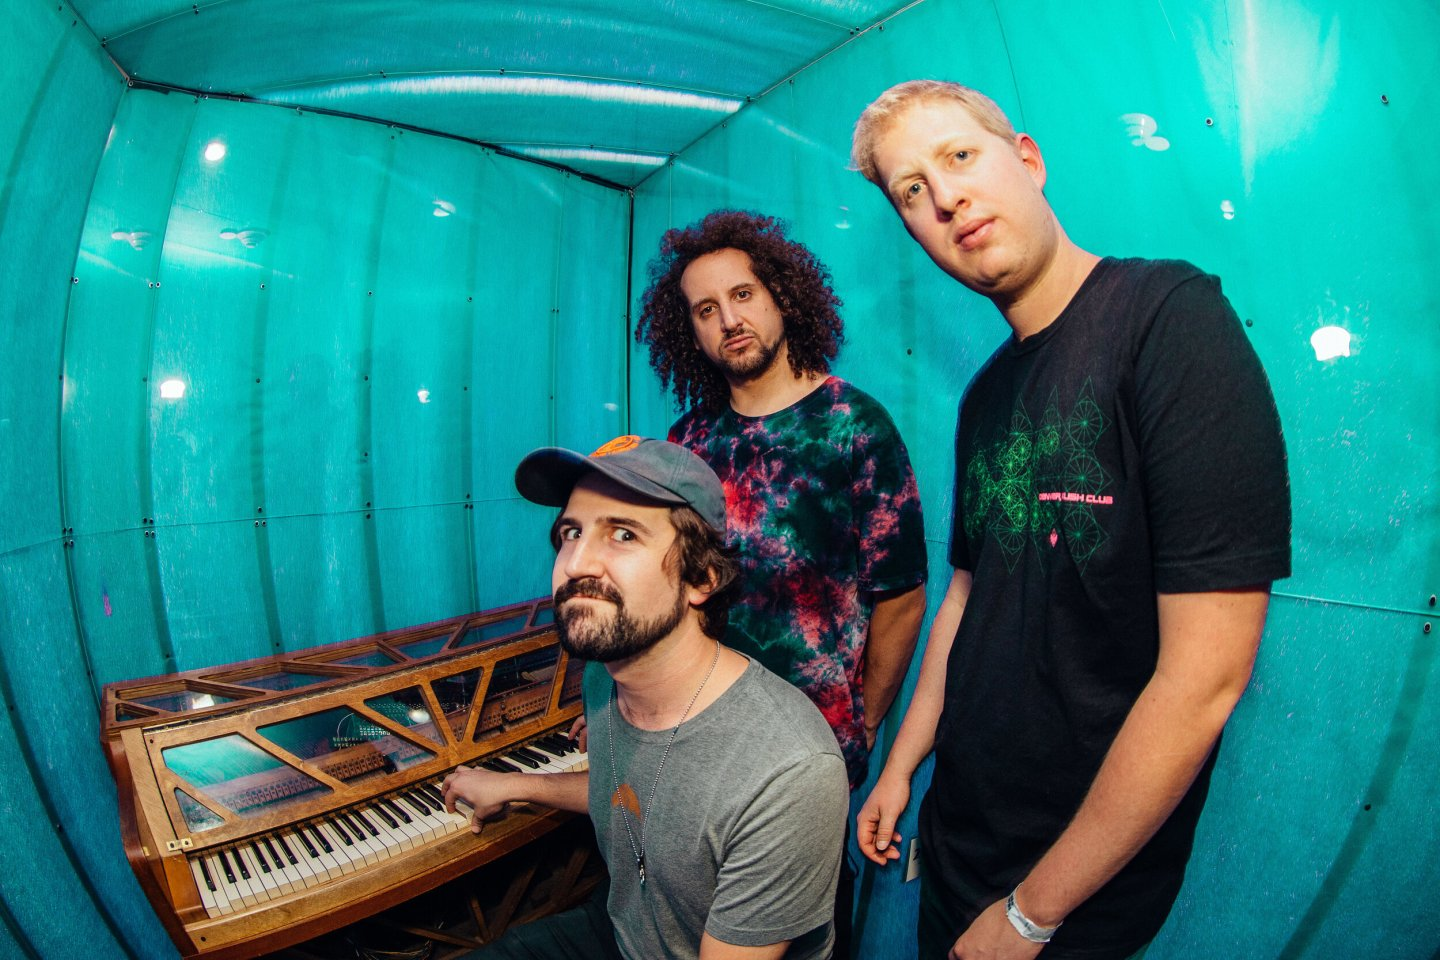 Jamtronica three piece band SunSquabi pose inside Meow Wolf while on tour in Santa Fe